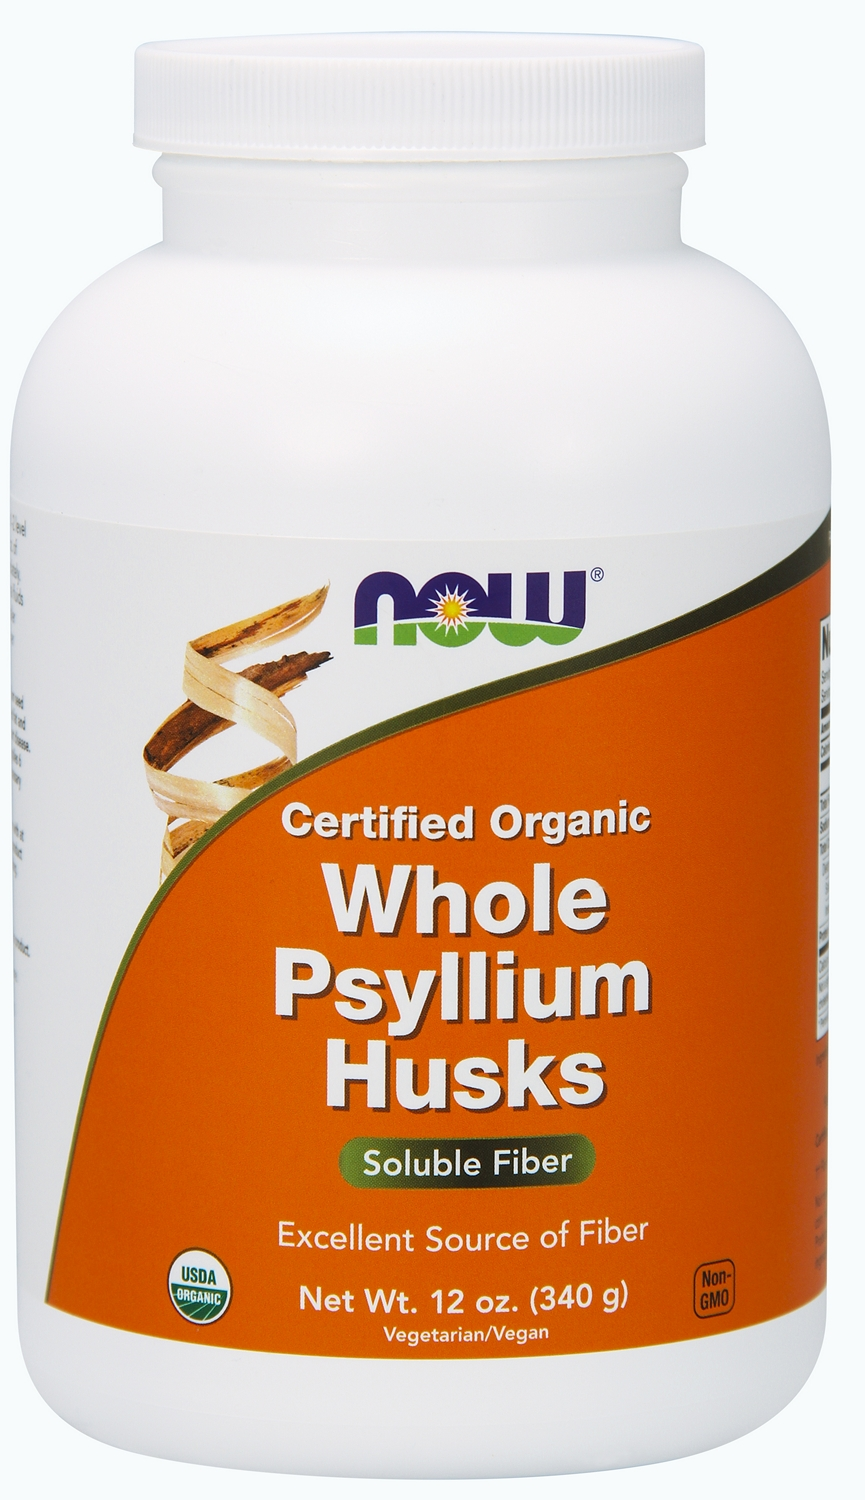 Whole Psyllium Husks 100% Certified Organic 12 oz (340 g) by NOW